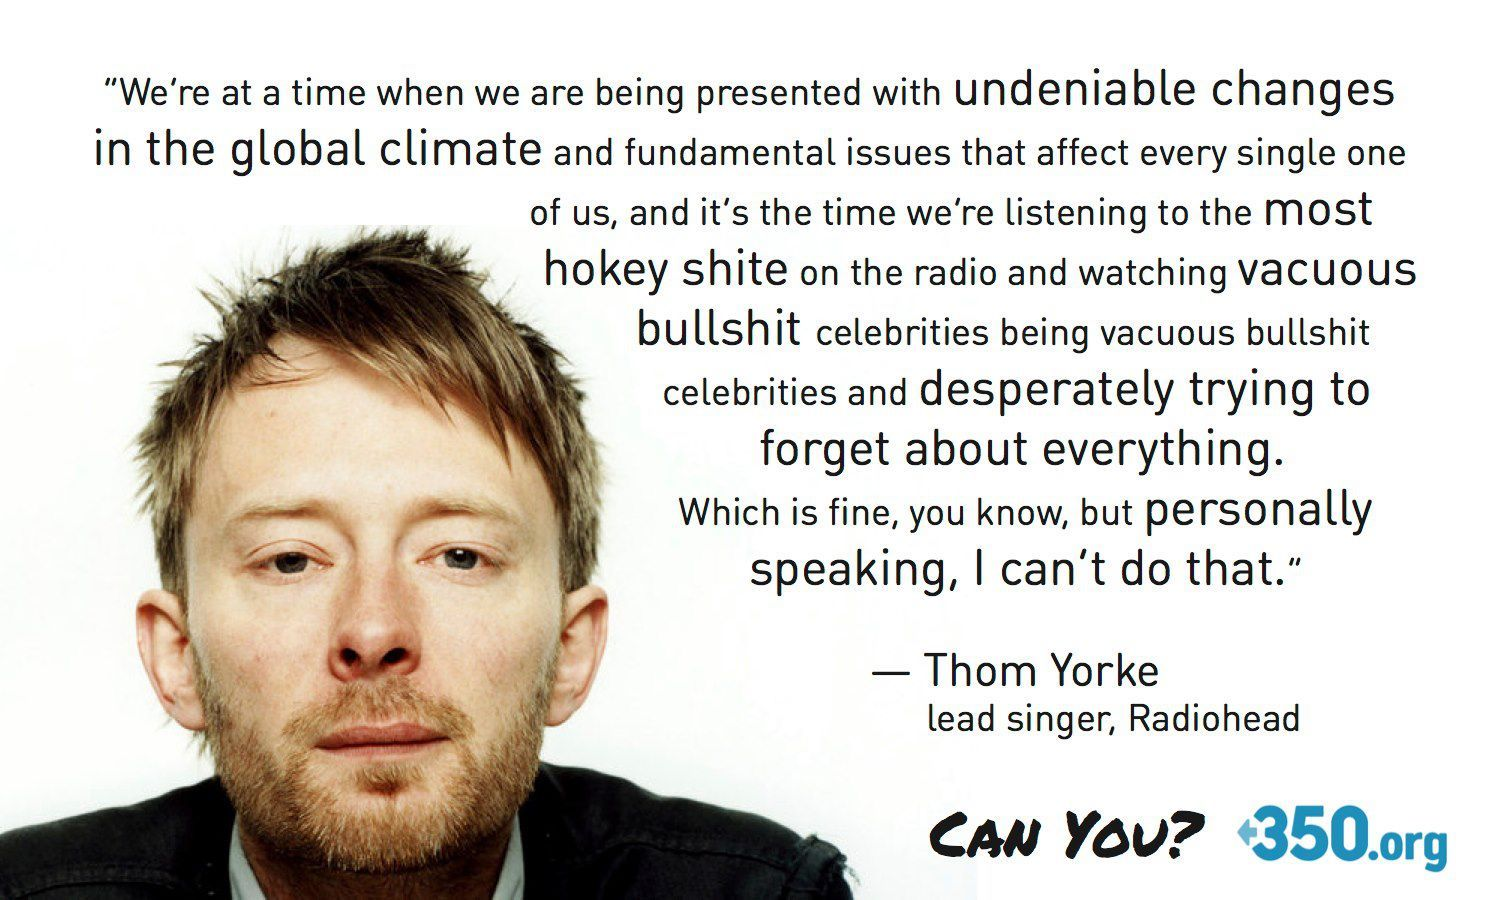 2be4dd8cf Thom Yorke from Radiohead speaks out about the need for climate change  action. 350.org quote